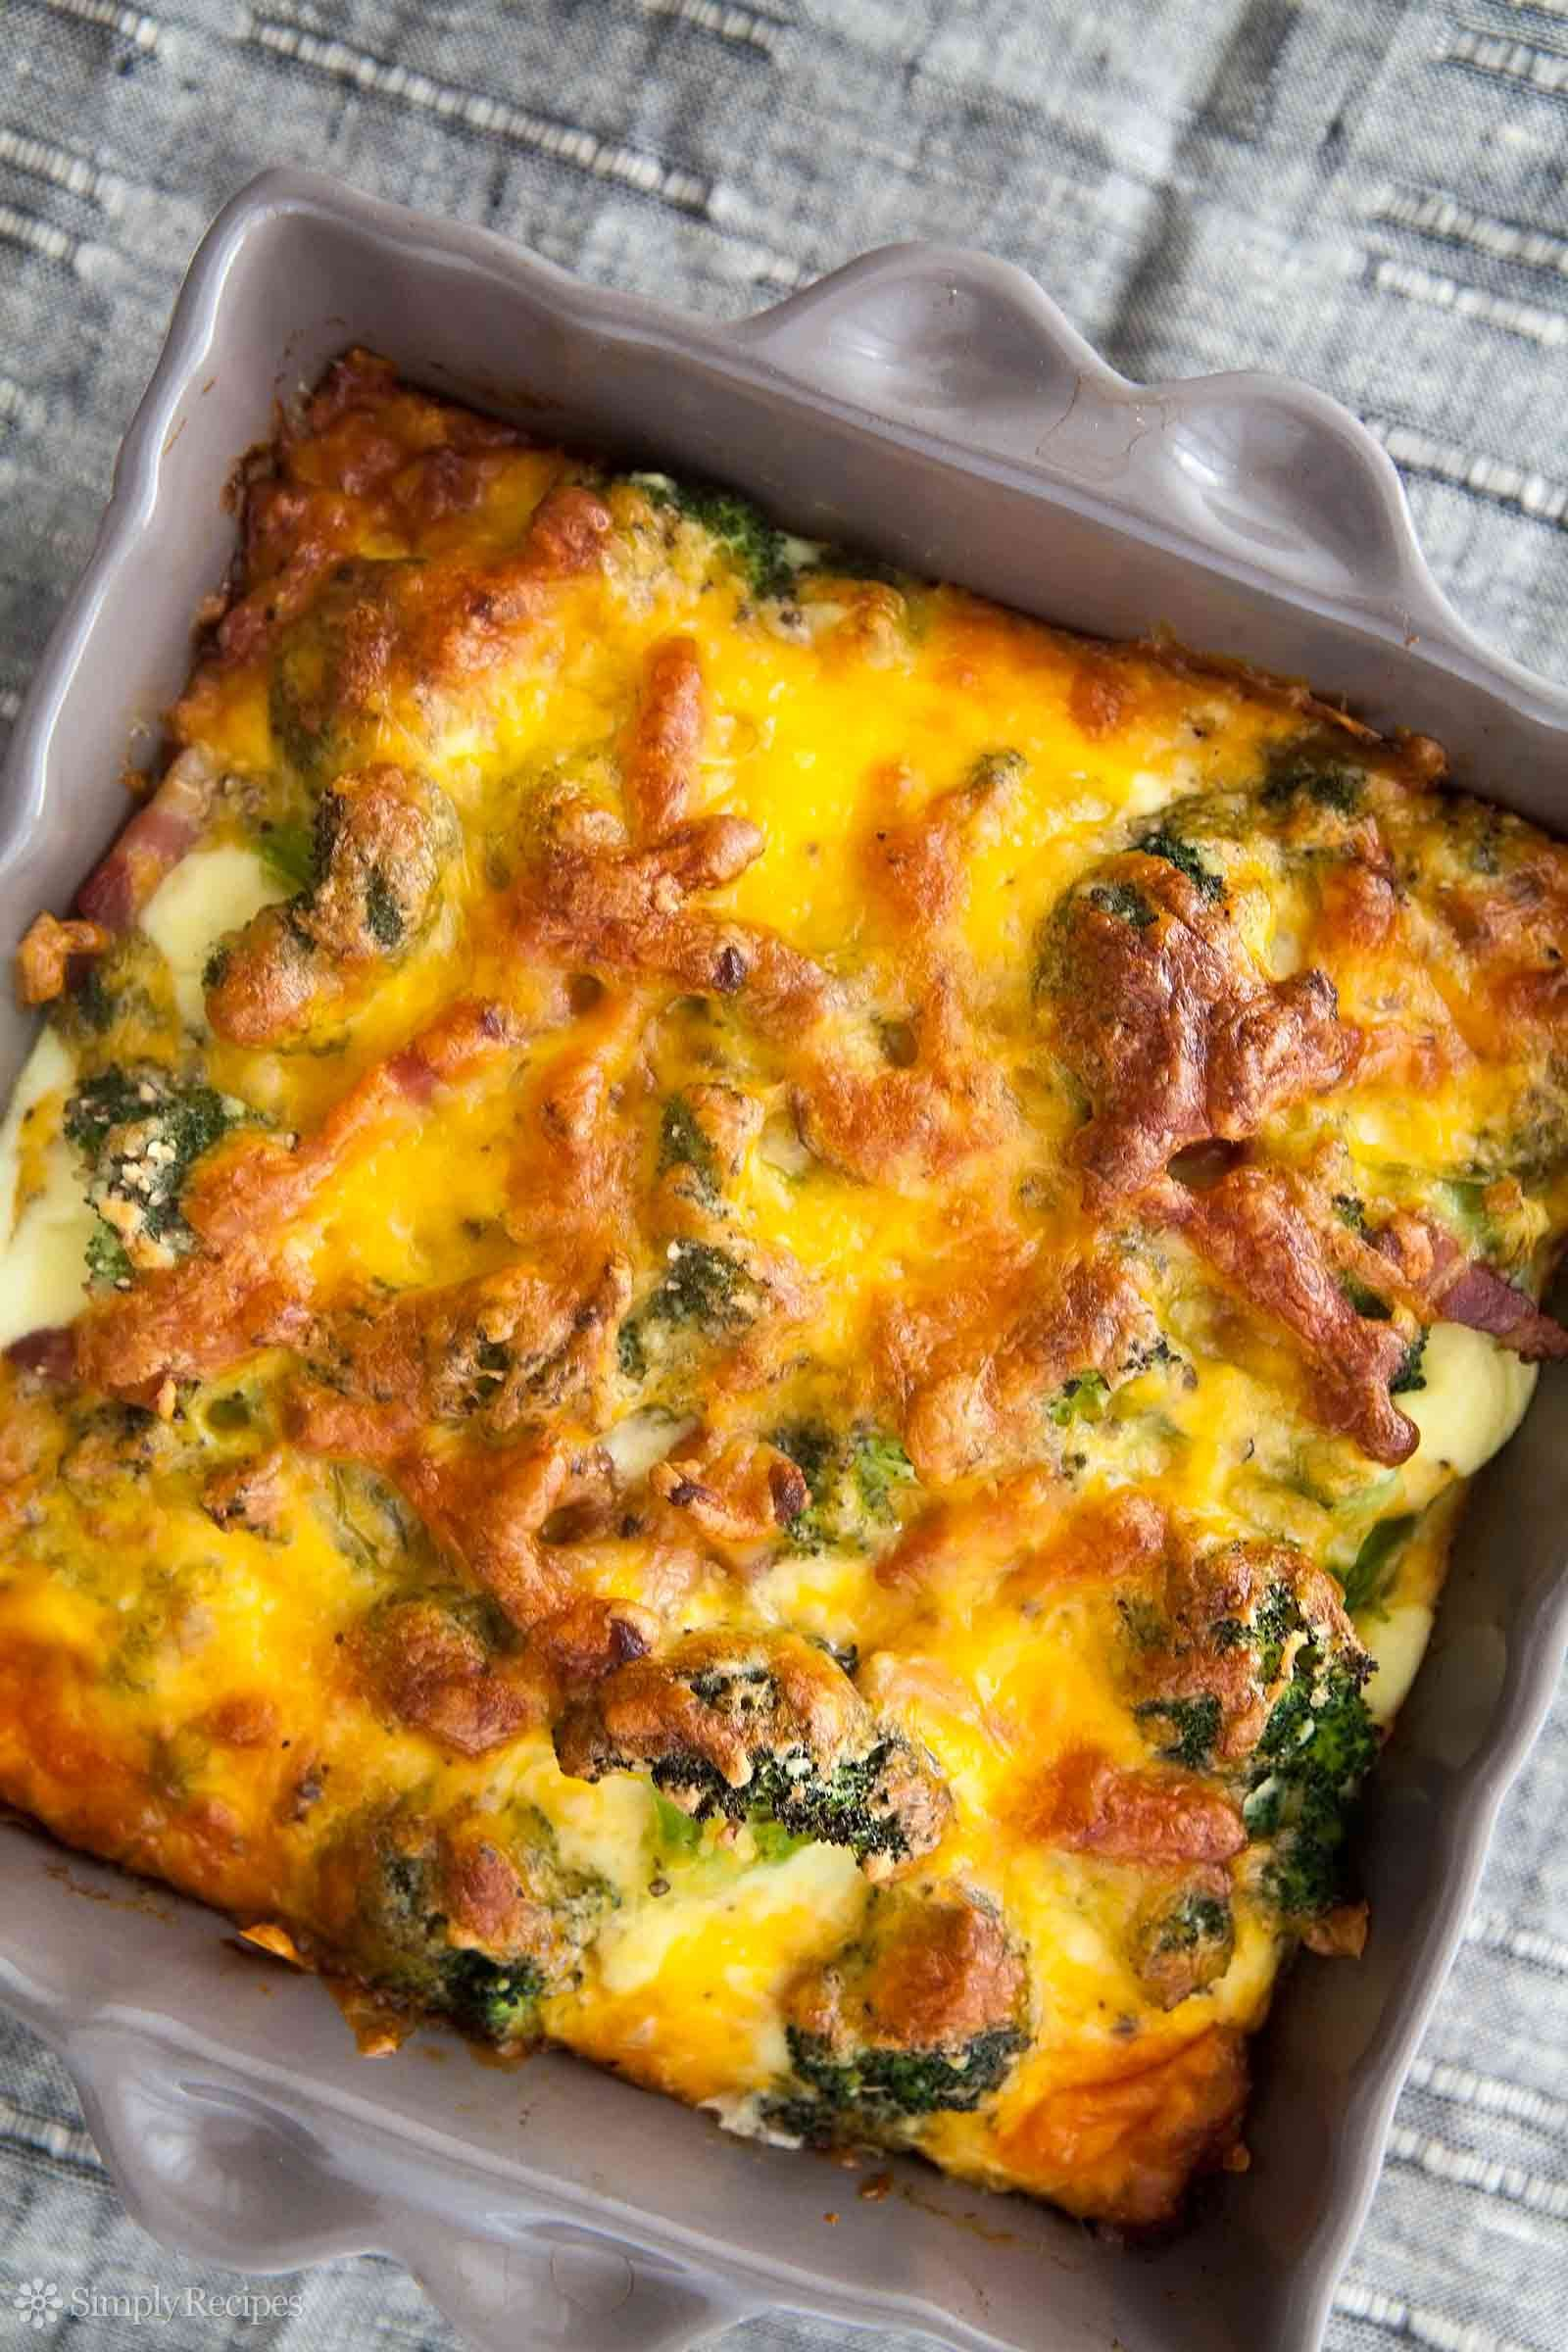 Broccoli Cheddar Casserole from Elise at Simply Recipes